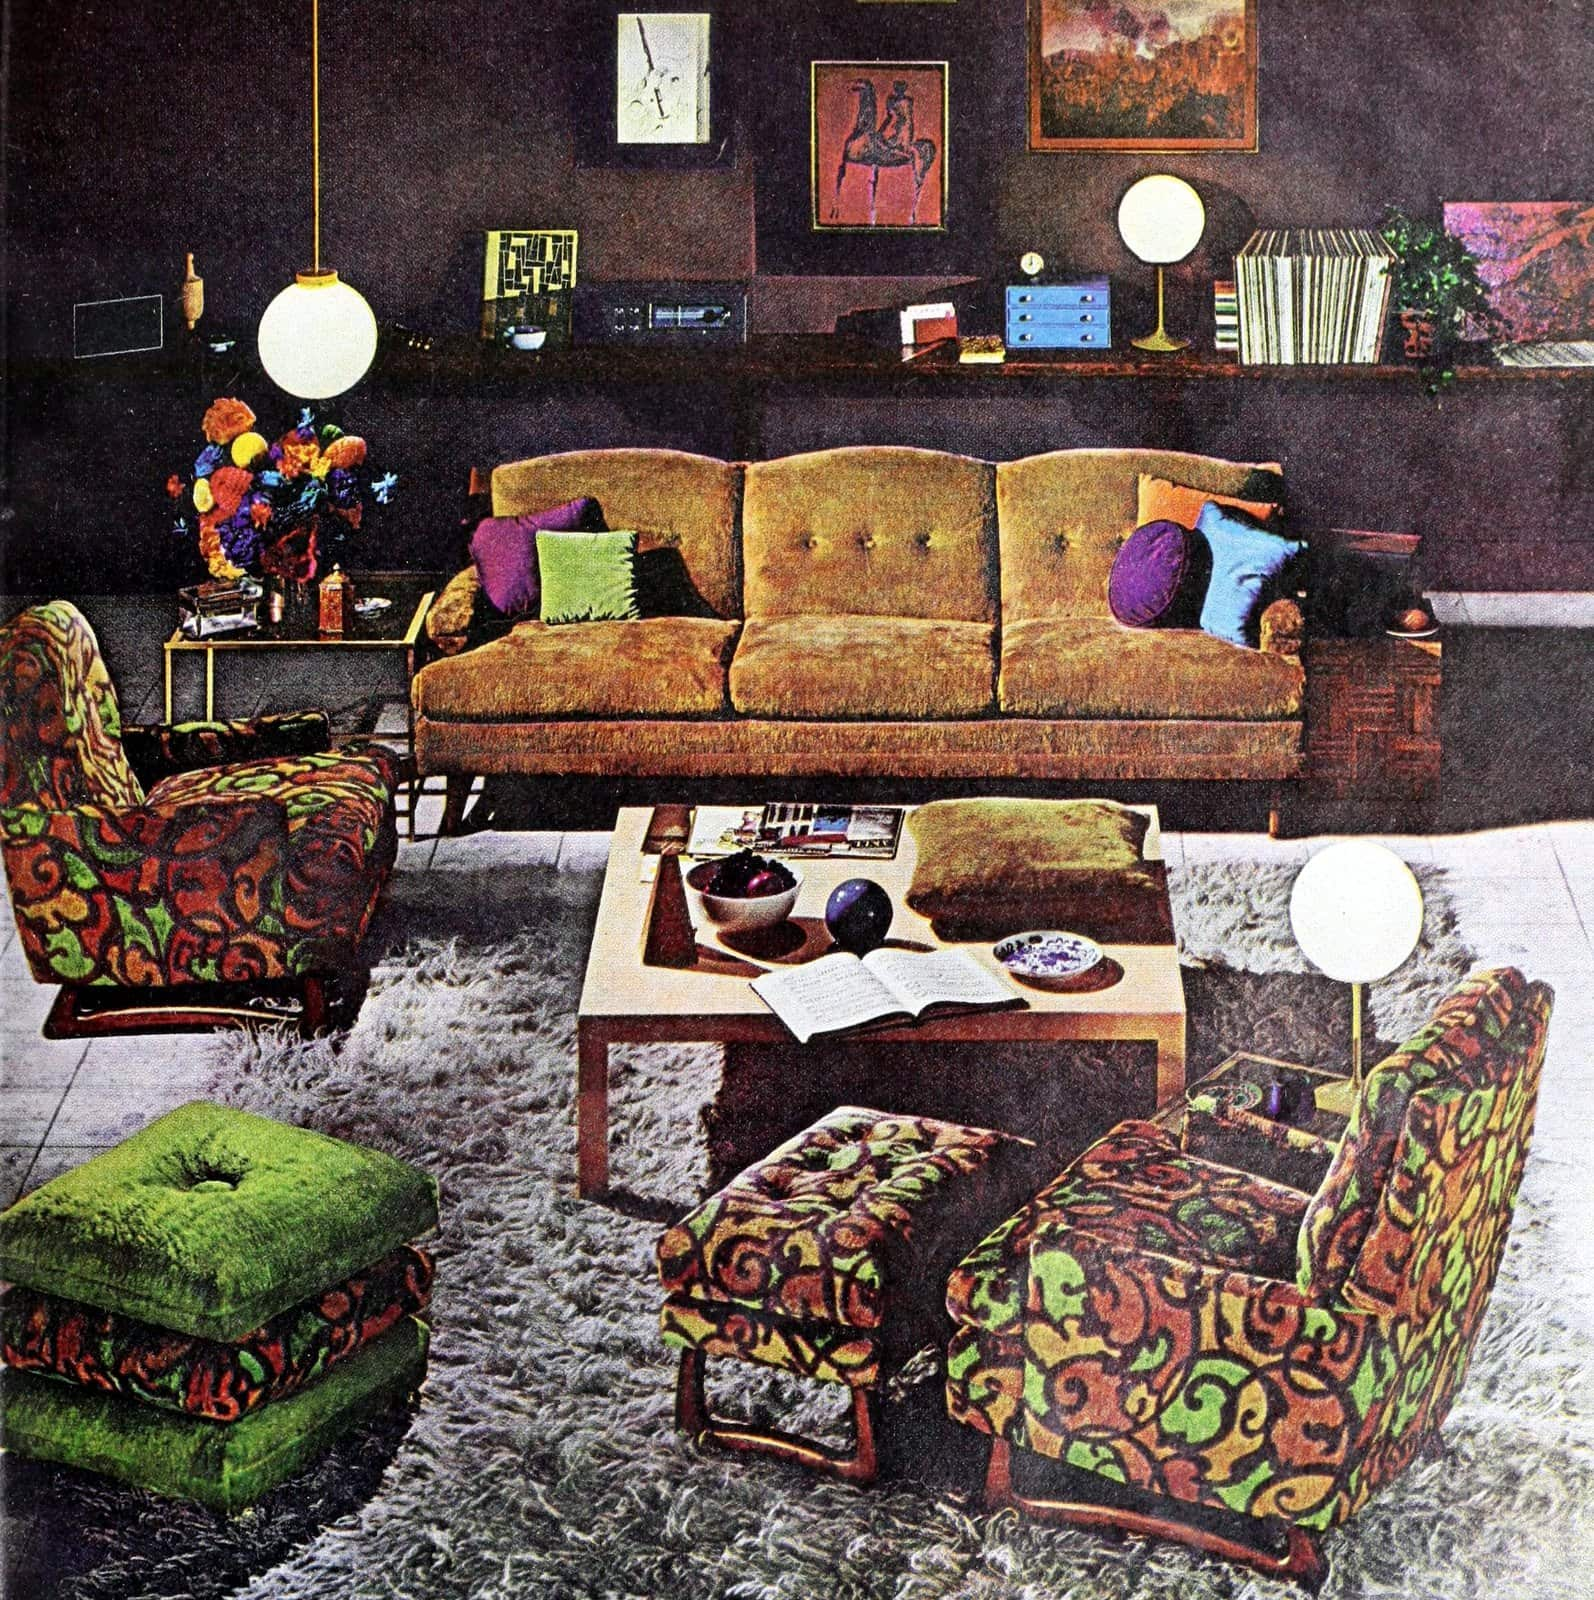 Retro living room furniture styles with quirky patterns (1967)